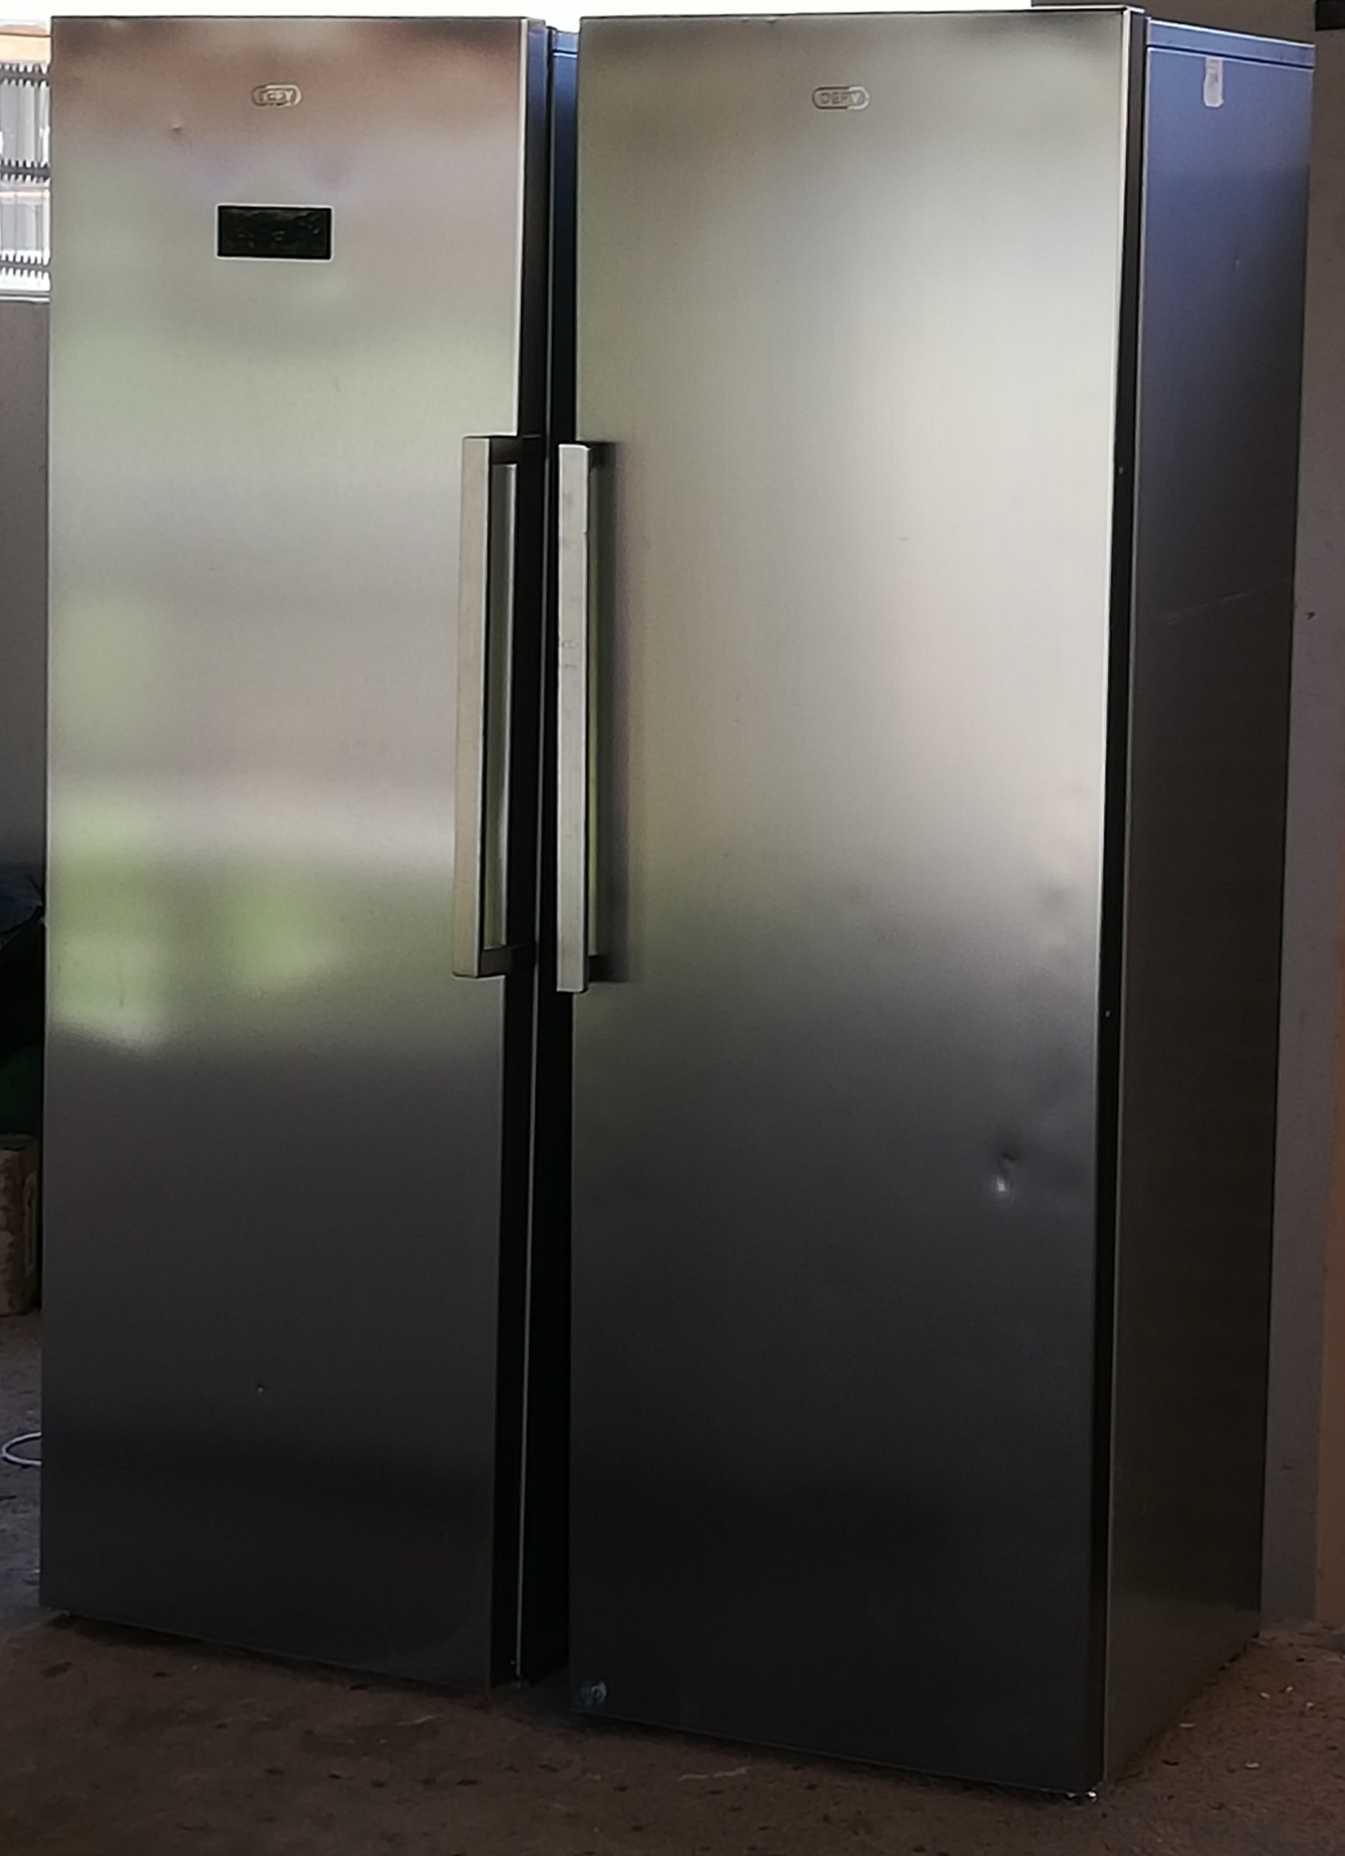 Stand Alone Fridge And Freezer